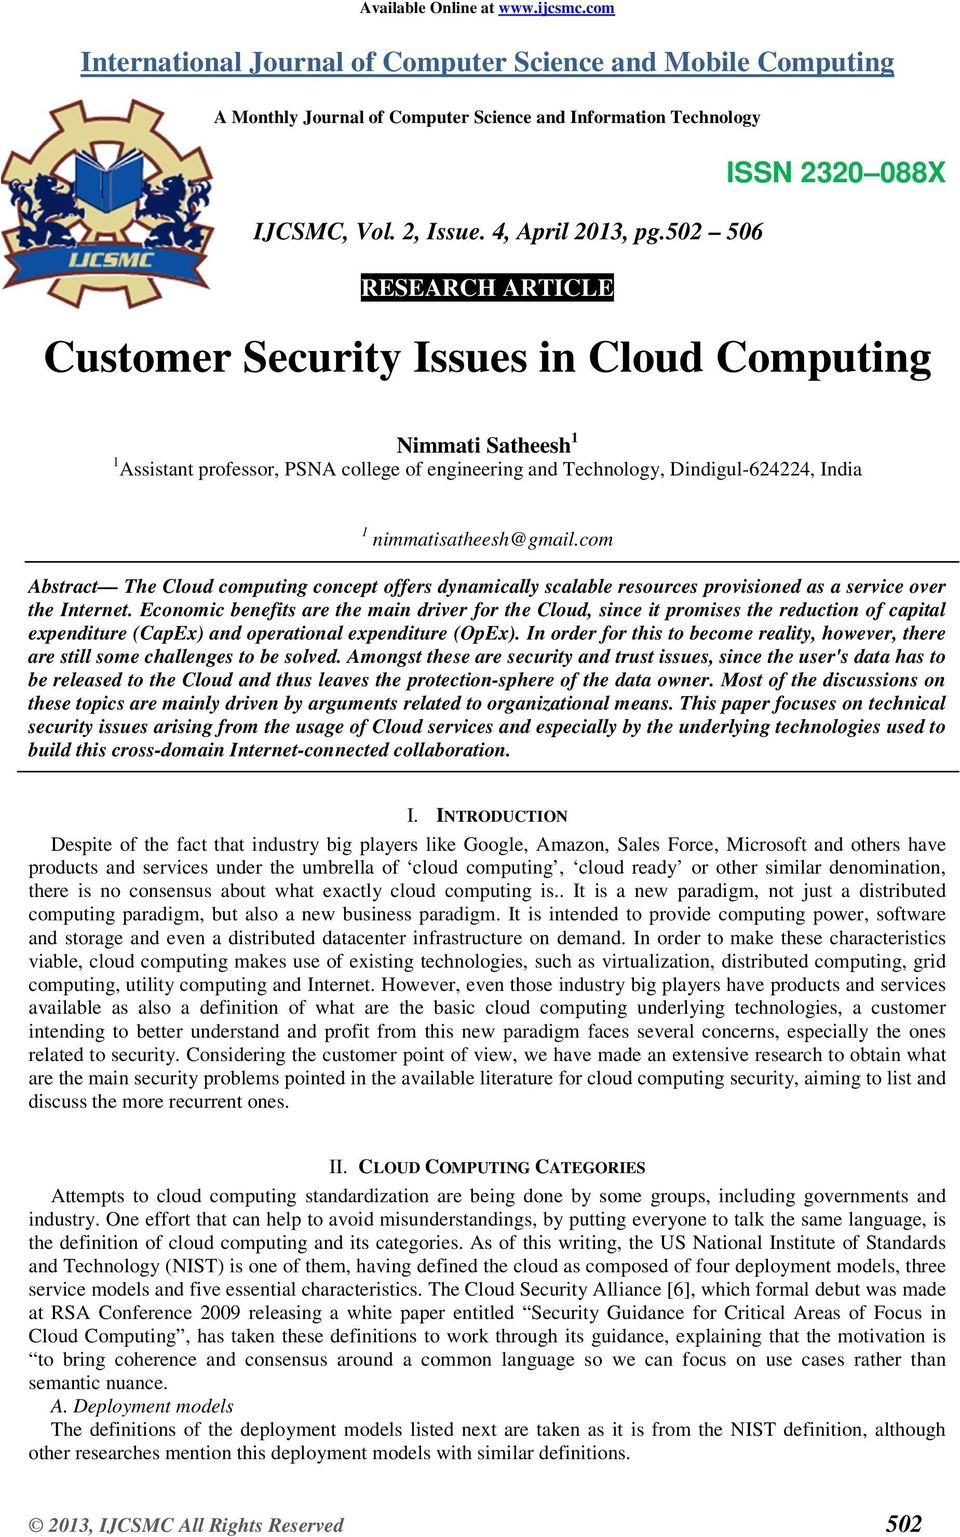 502 506 RESEARCH ARTICLE Customer Security Issues in Cloud Computing Nimmati Satheesh 1 1 Assistant professor, PSNA college of engineering and Technology, Dindigul-624224, India 1